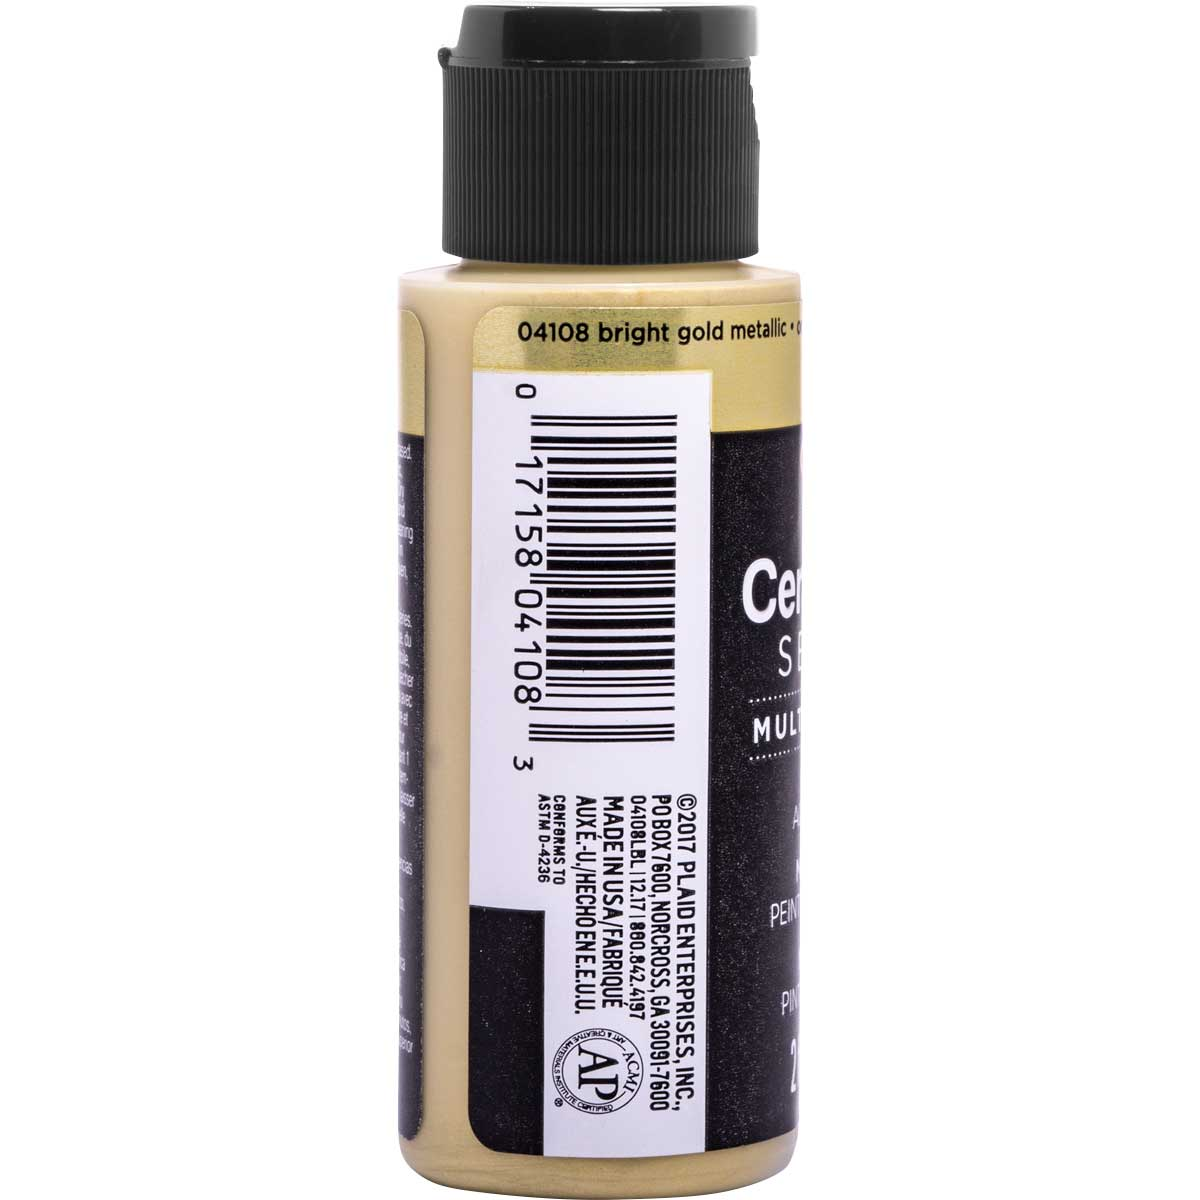 Delta Ceramcoat ® Select Multi-Surface Acrylic Paint - Metallic - Bright Gold, 2 oz. - 04108